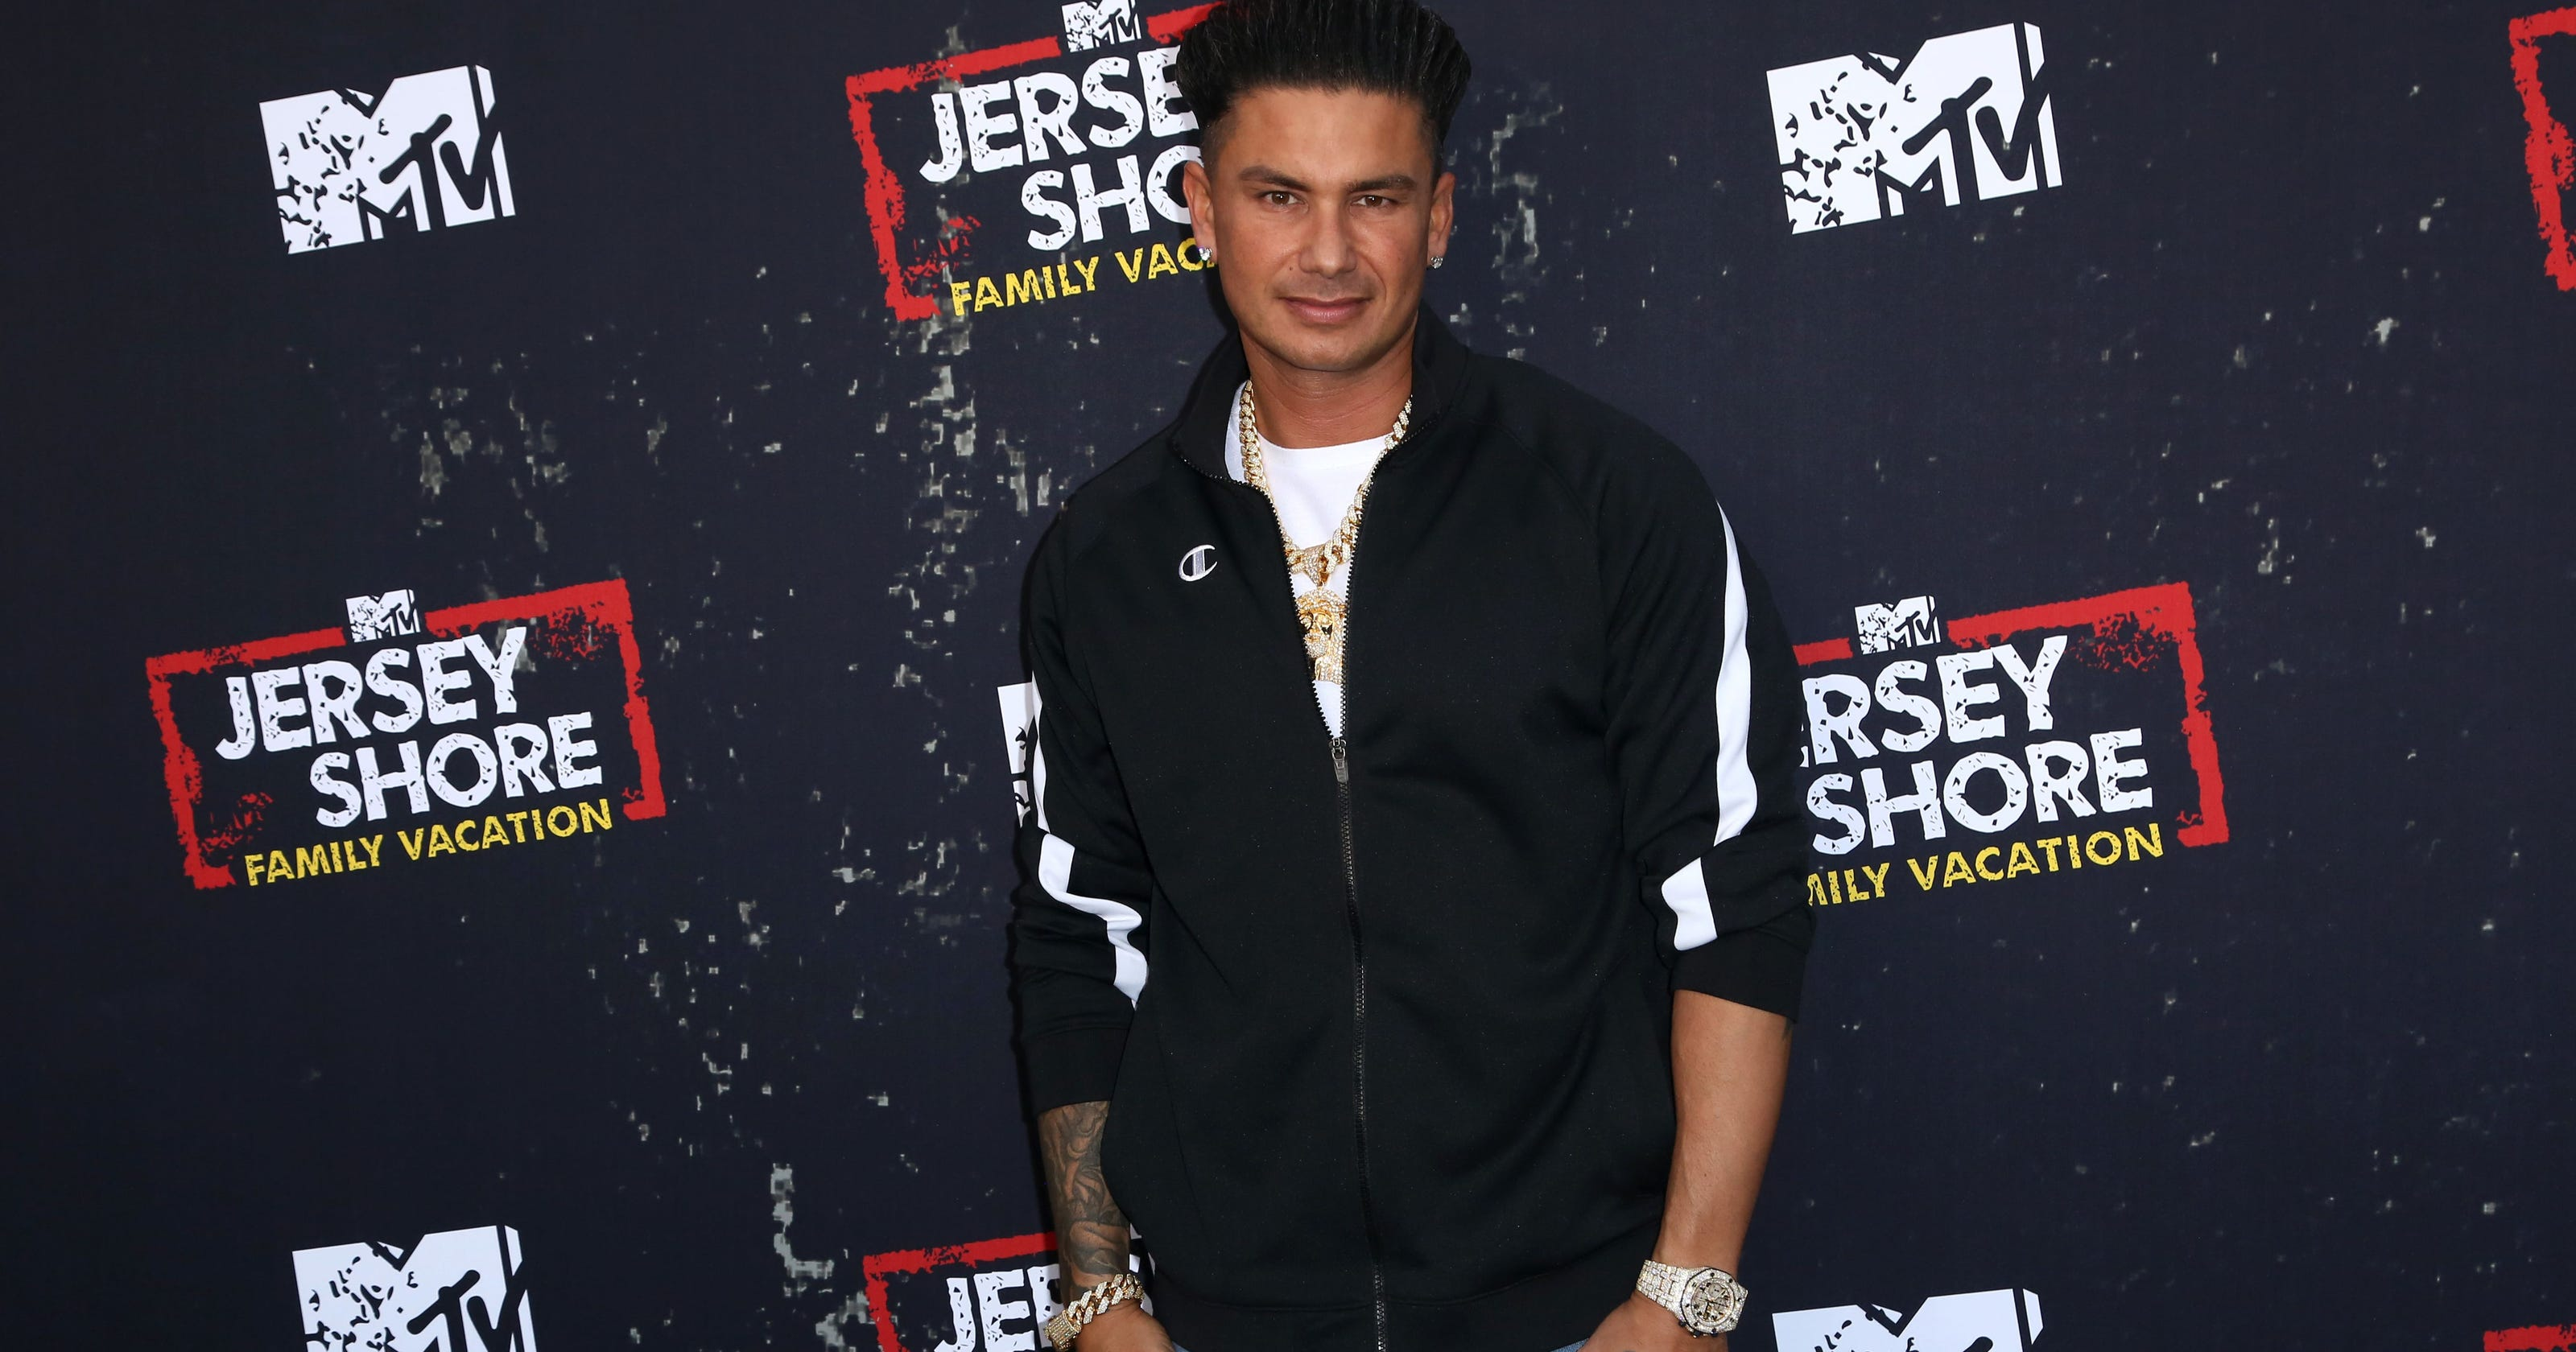 Married pauly d Jersey Shore's